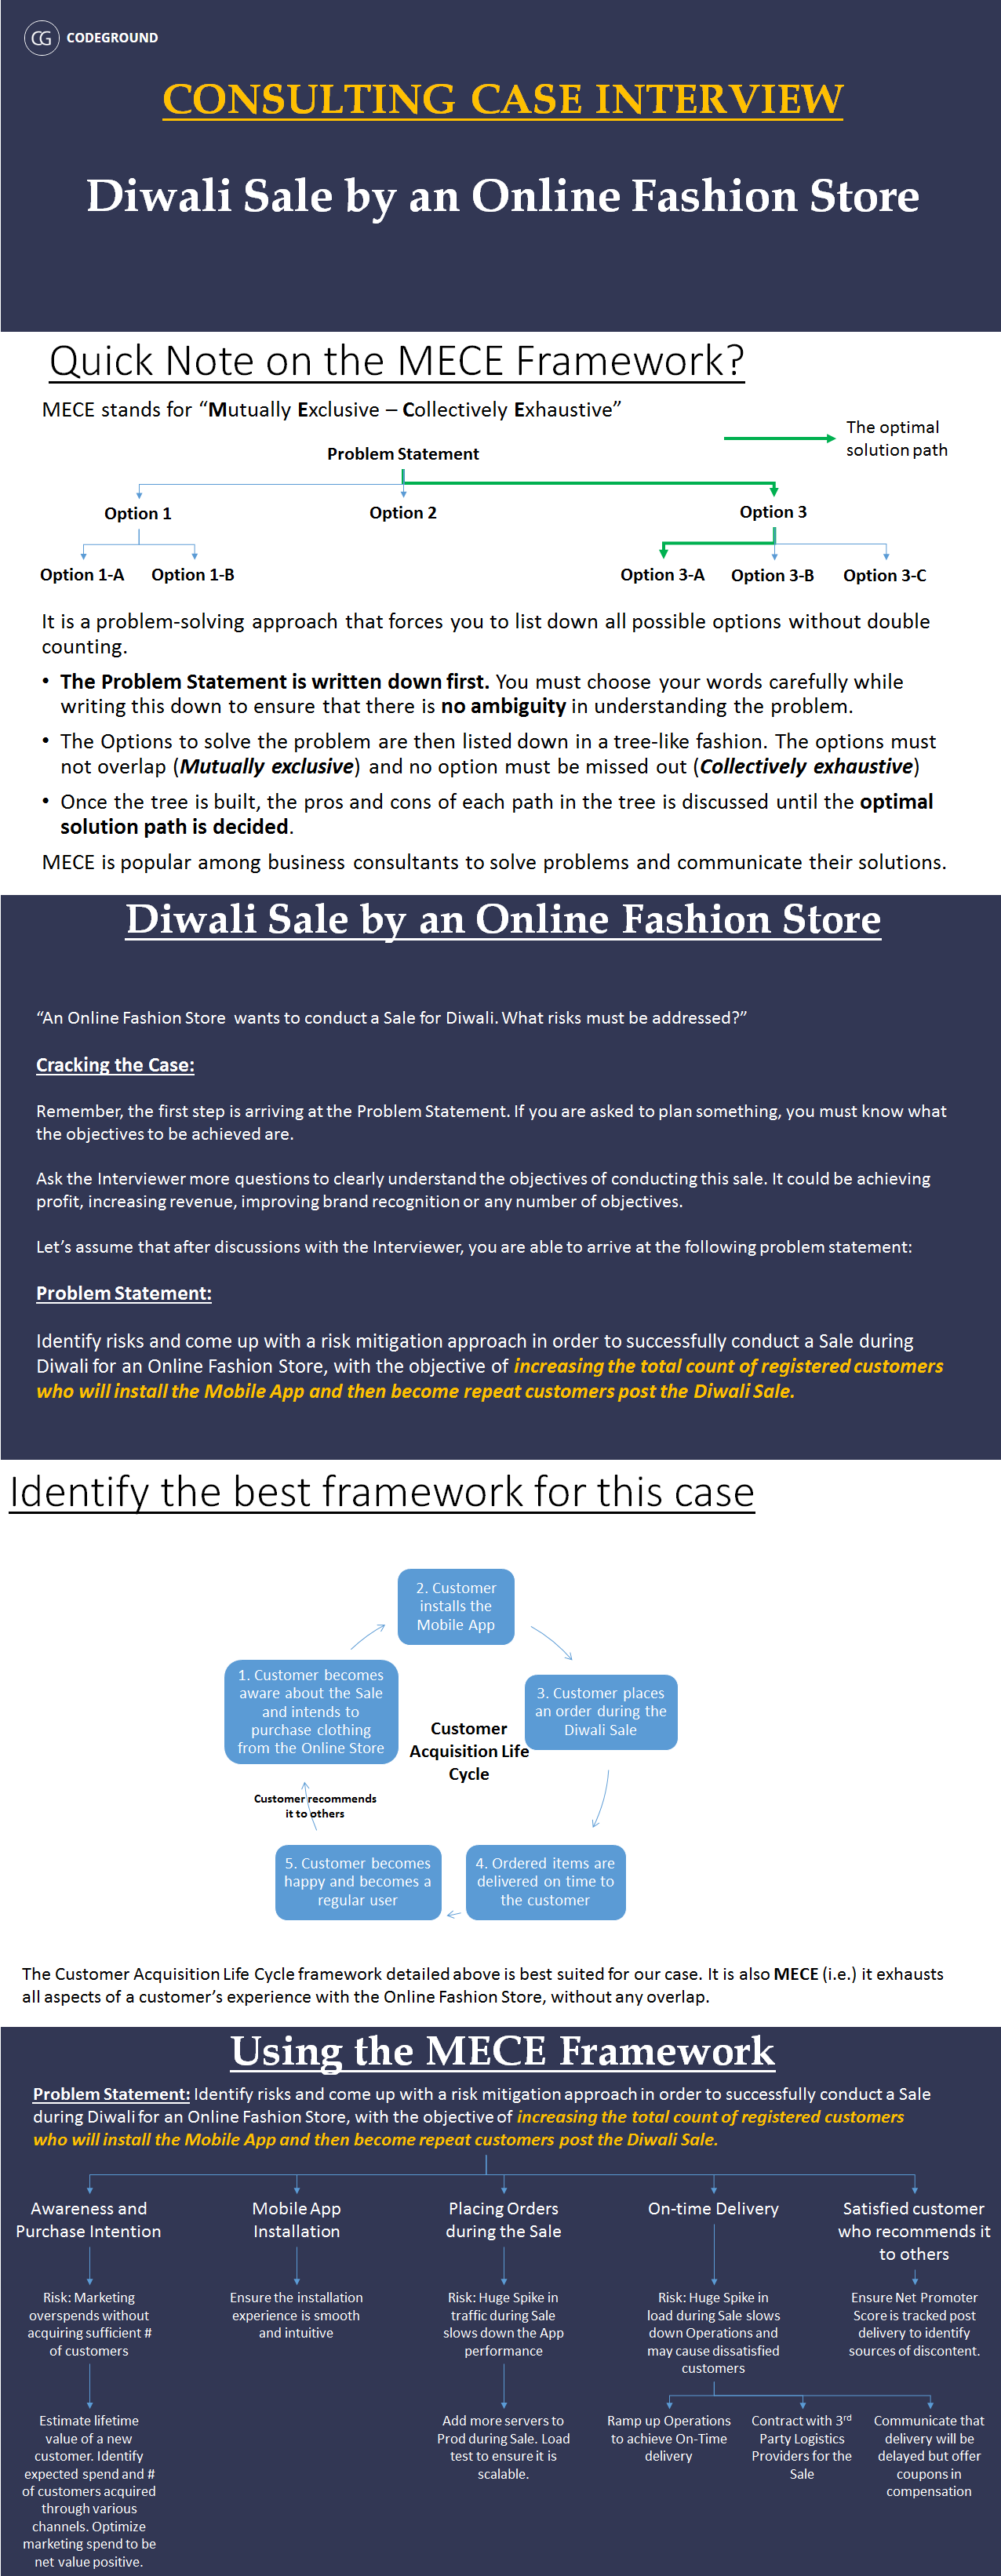 consulting case interview question diwali by online fashion case interview diwali for online fashion store